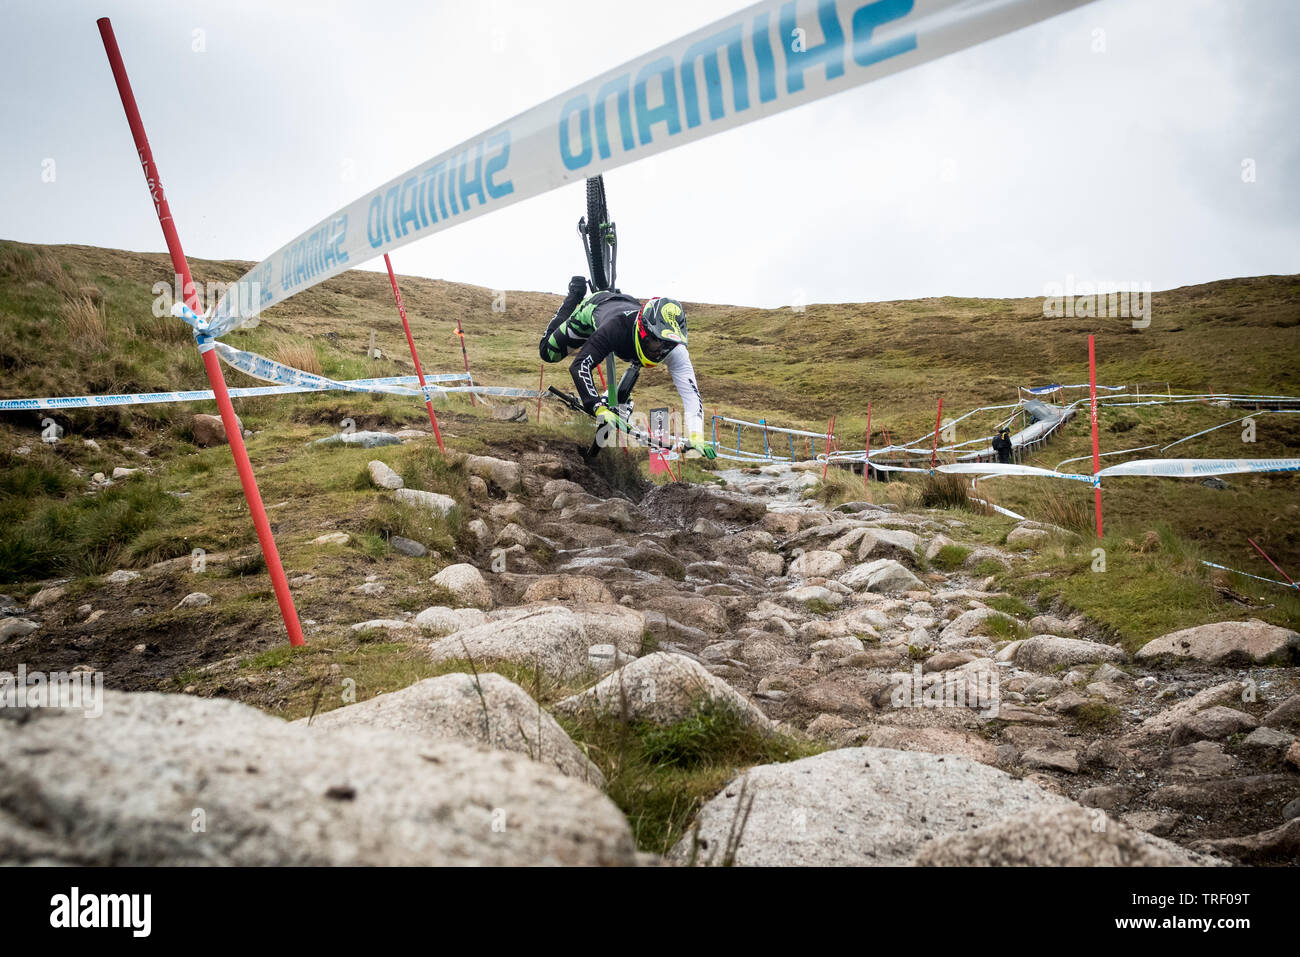 Downhill mountain bike crash sequence - rider Adam Brayton at the UCI Mountain Bike World Cup in Fort William 2019 during practice 12 images  5/12 - Stock Image